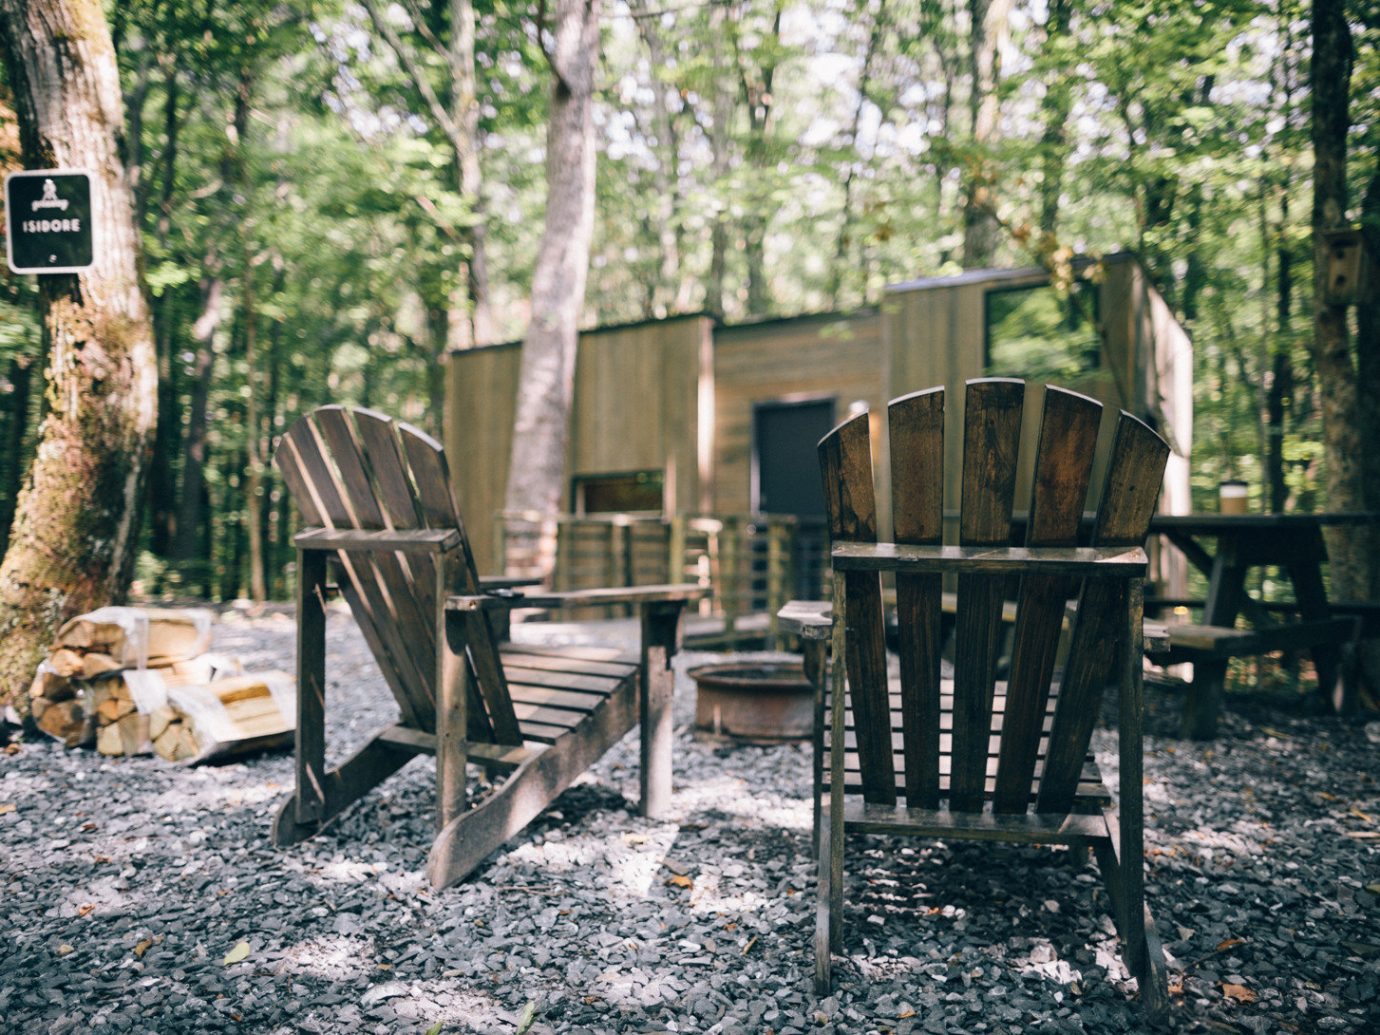 Boutique Hotels Fall Travel Hotels Outdoors + Adventure tree ground outdoor chair furniture woodland plant backyard outdoor structure wood table yard house Forest bench seat area dining table